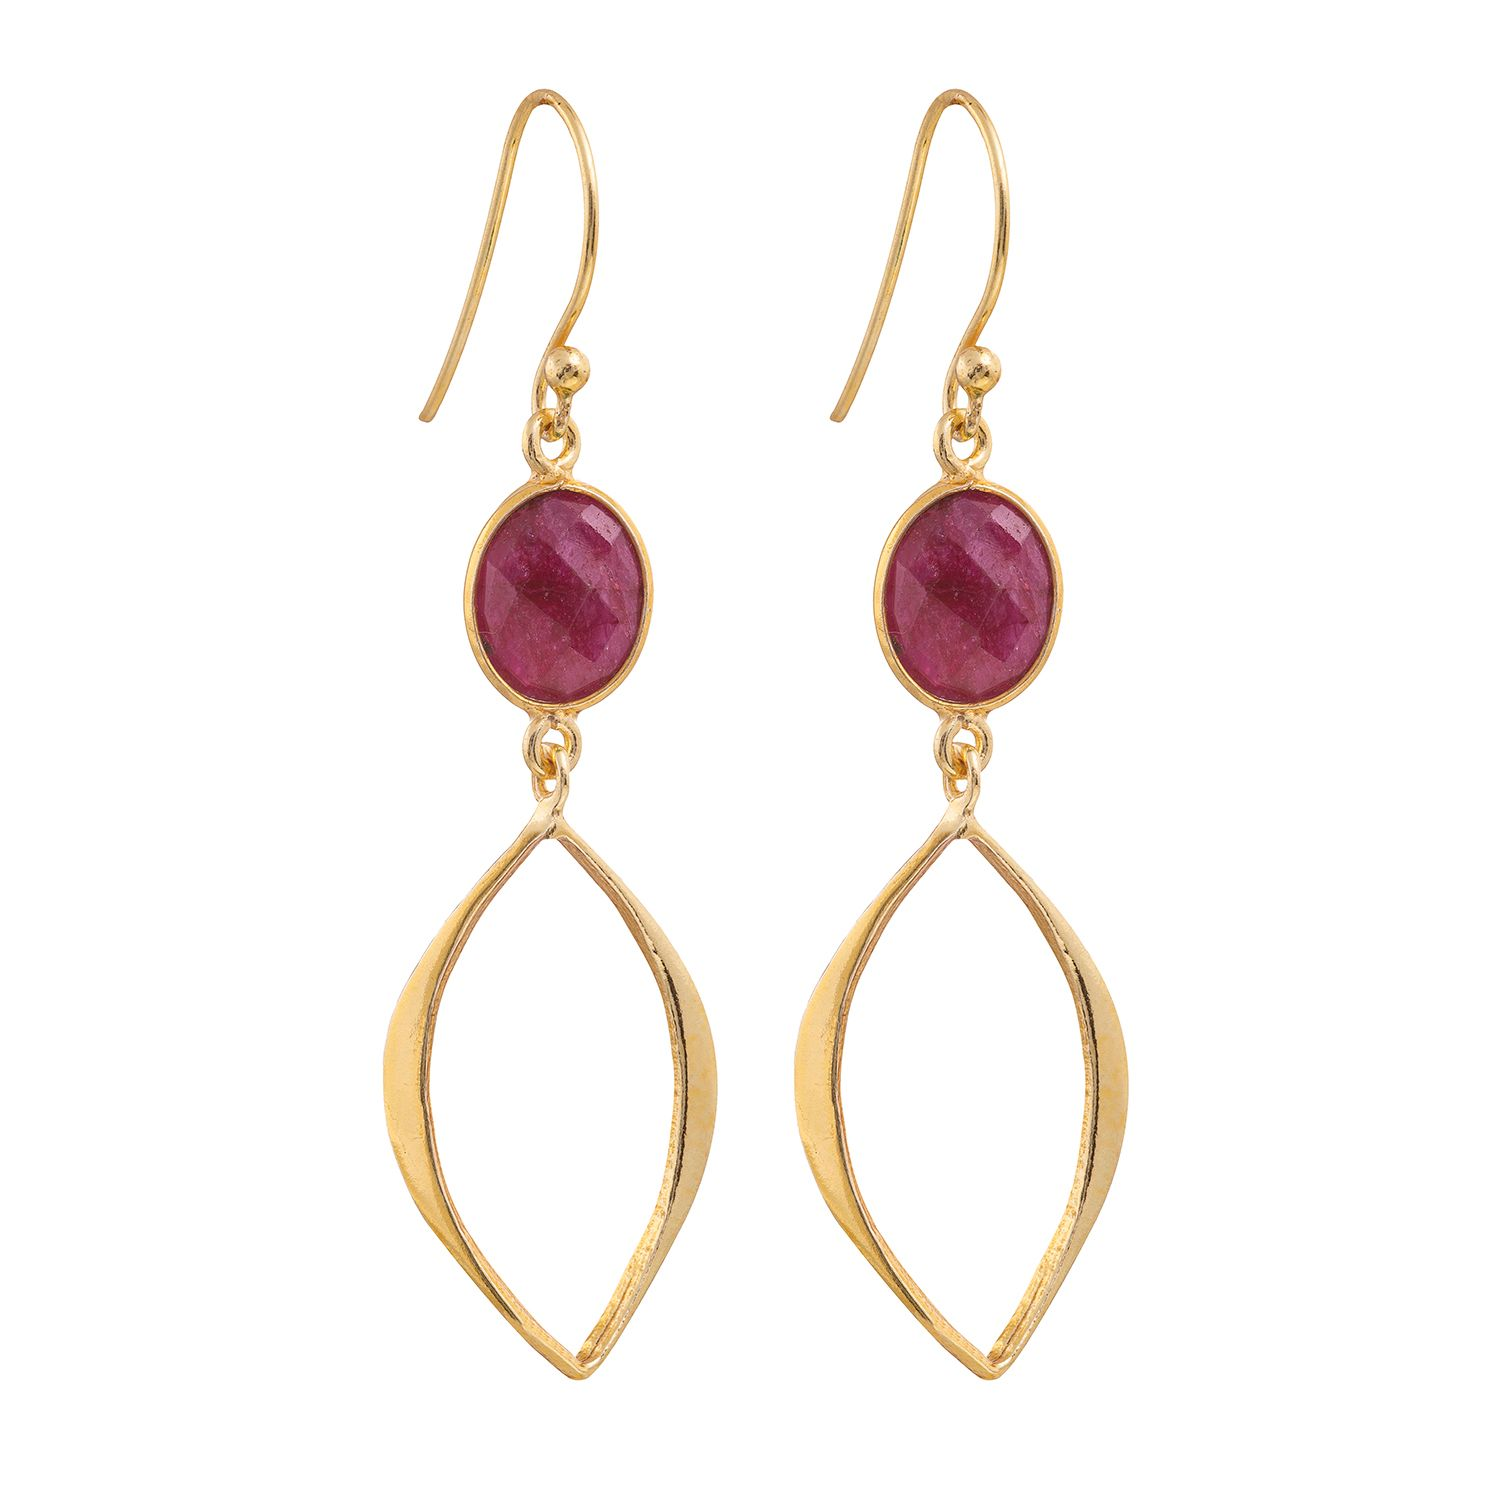 Juvi Designs Gold vermeil boho cat eye earrings, Red